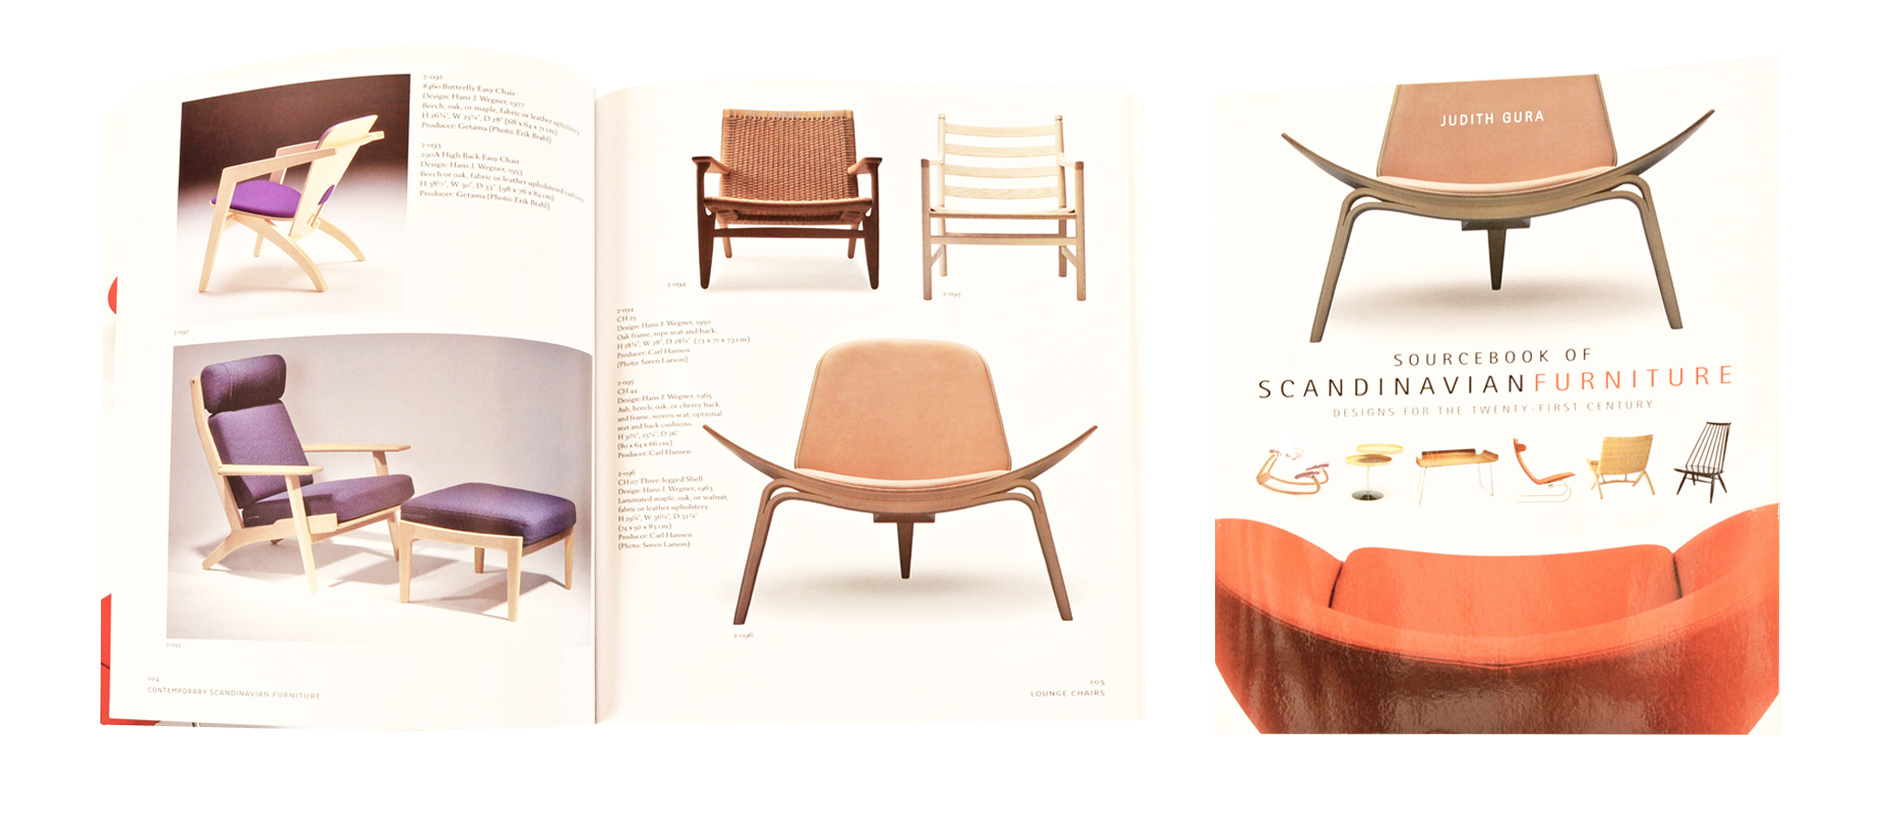 Scandinavian Design Furniture Store Build Book Review Archiweb 3